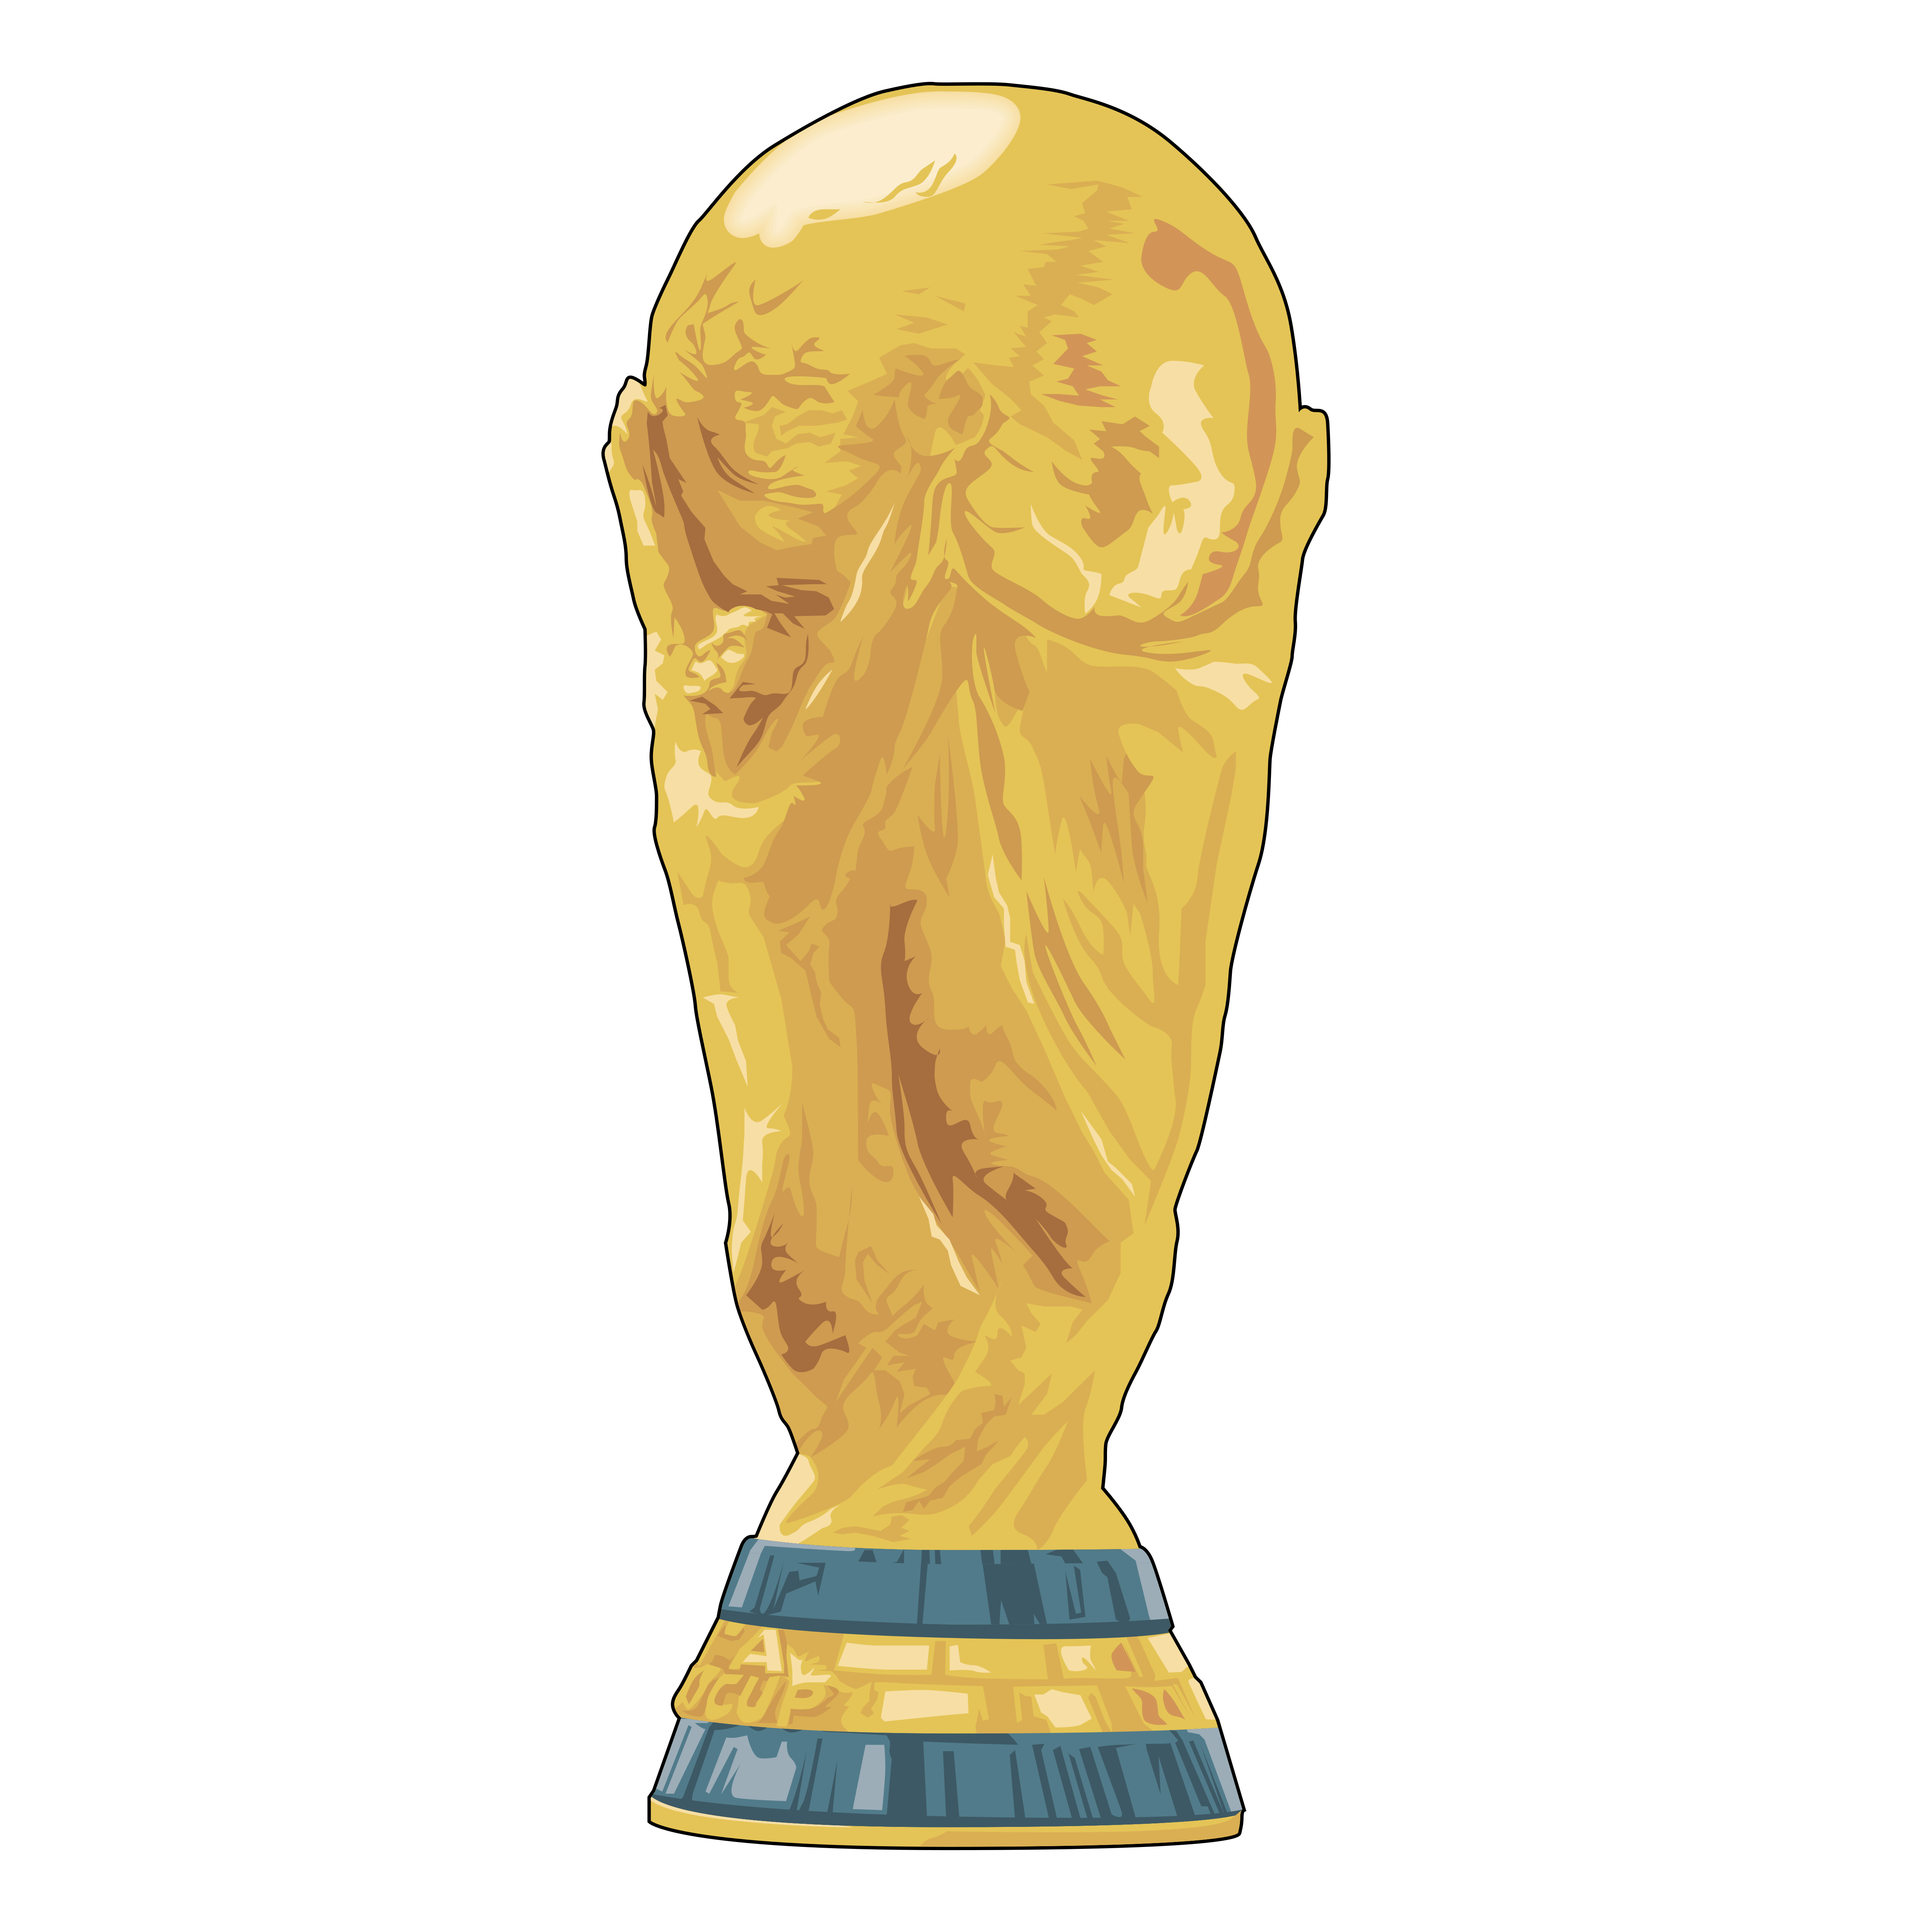 fifa world cup logos download Real Estate Sellers Clip Art Real Estate Symbols Clip Art